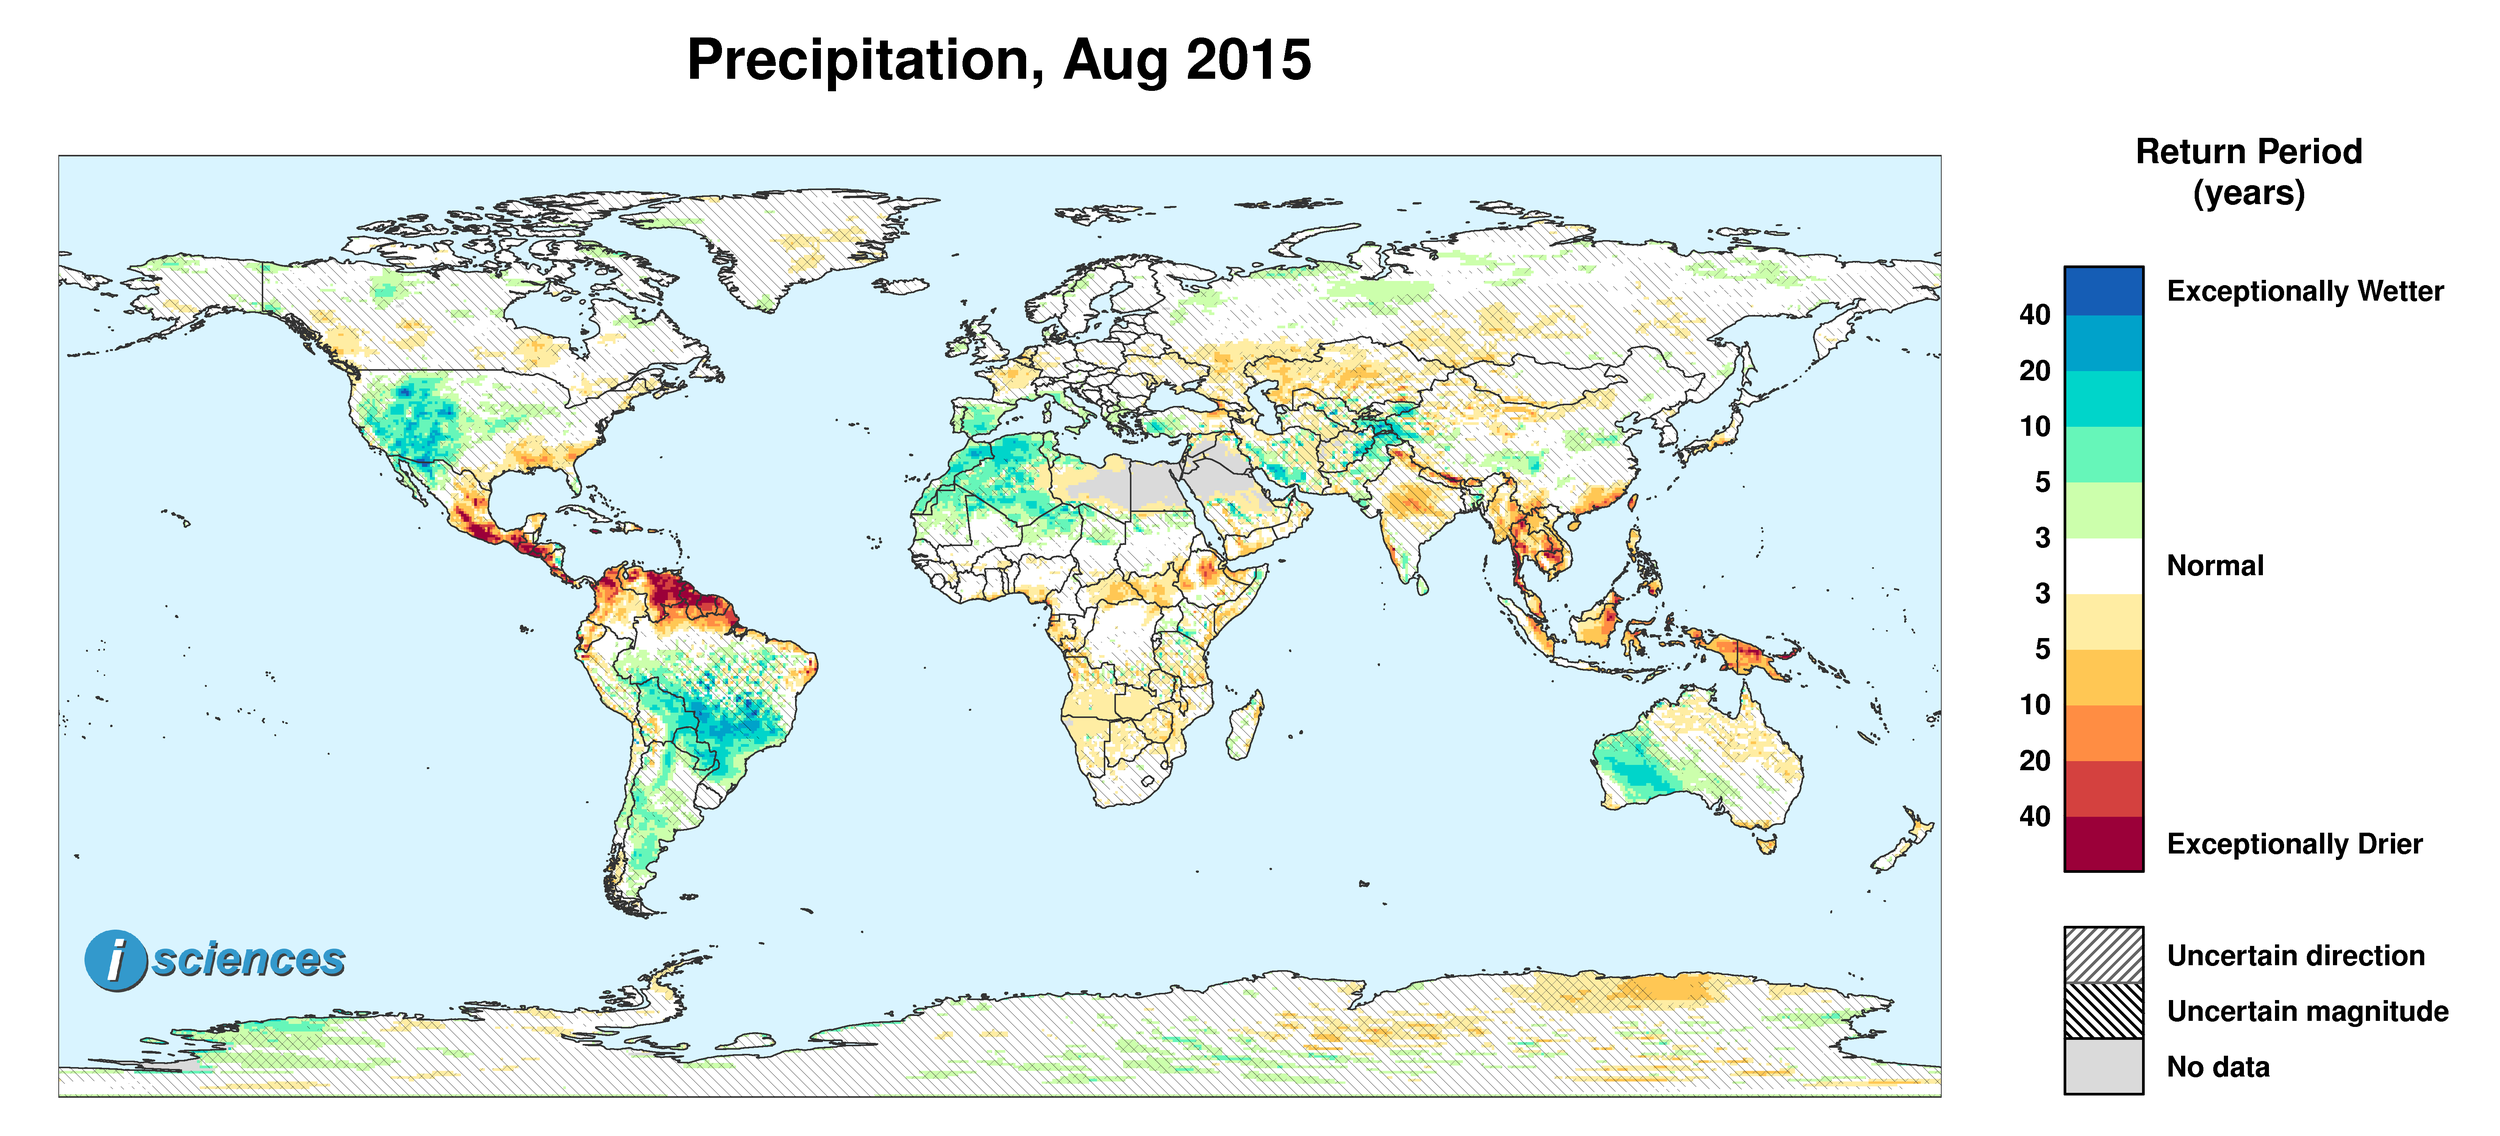 Precipitation outlook for August2015. Reds indicate below normal monthly total precipitation. Blues indicate above normal monthly total precipitation. The darker the color, the more extreme the anomaly relative to a 1950-2009 climatic baseline. Colors are based on the expected return period of the anomalies.